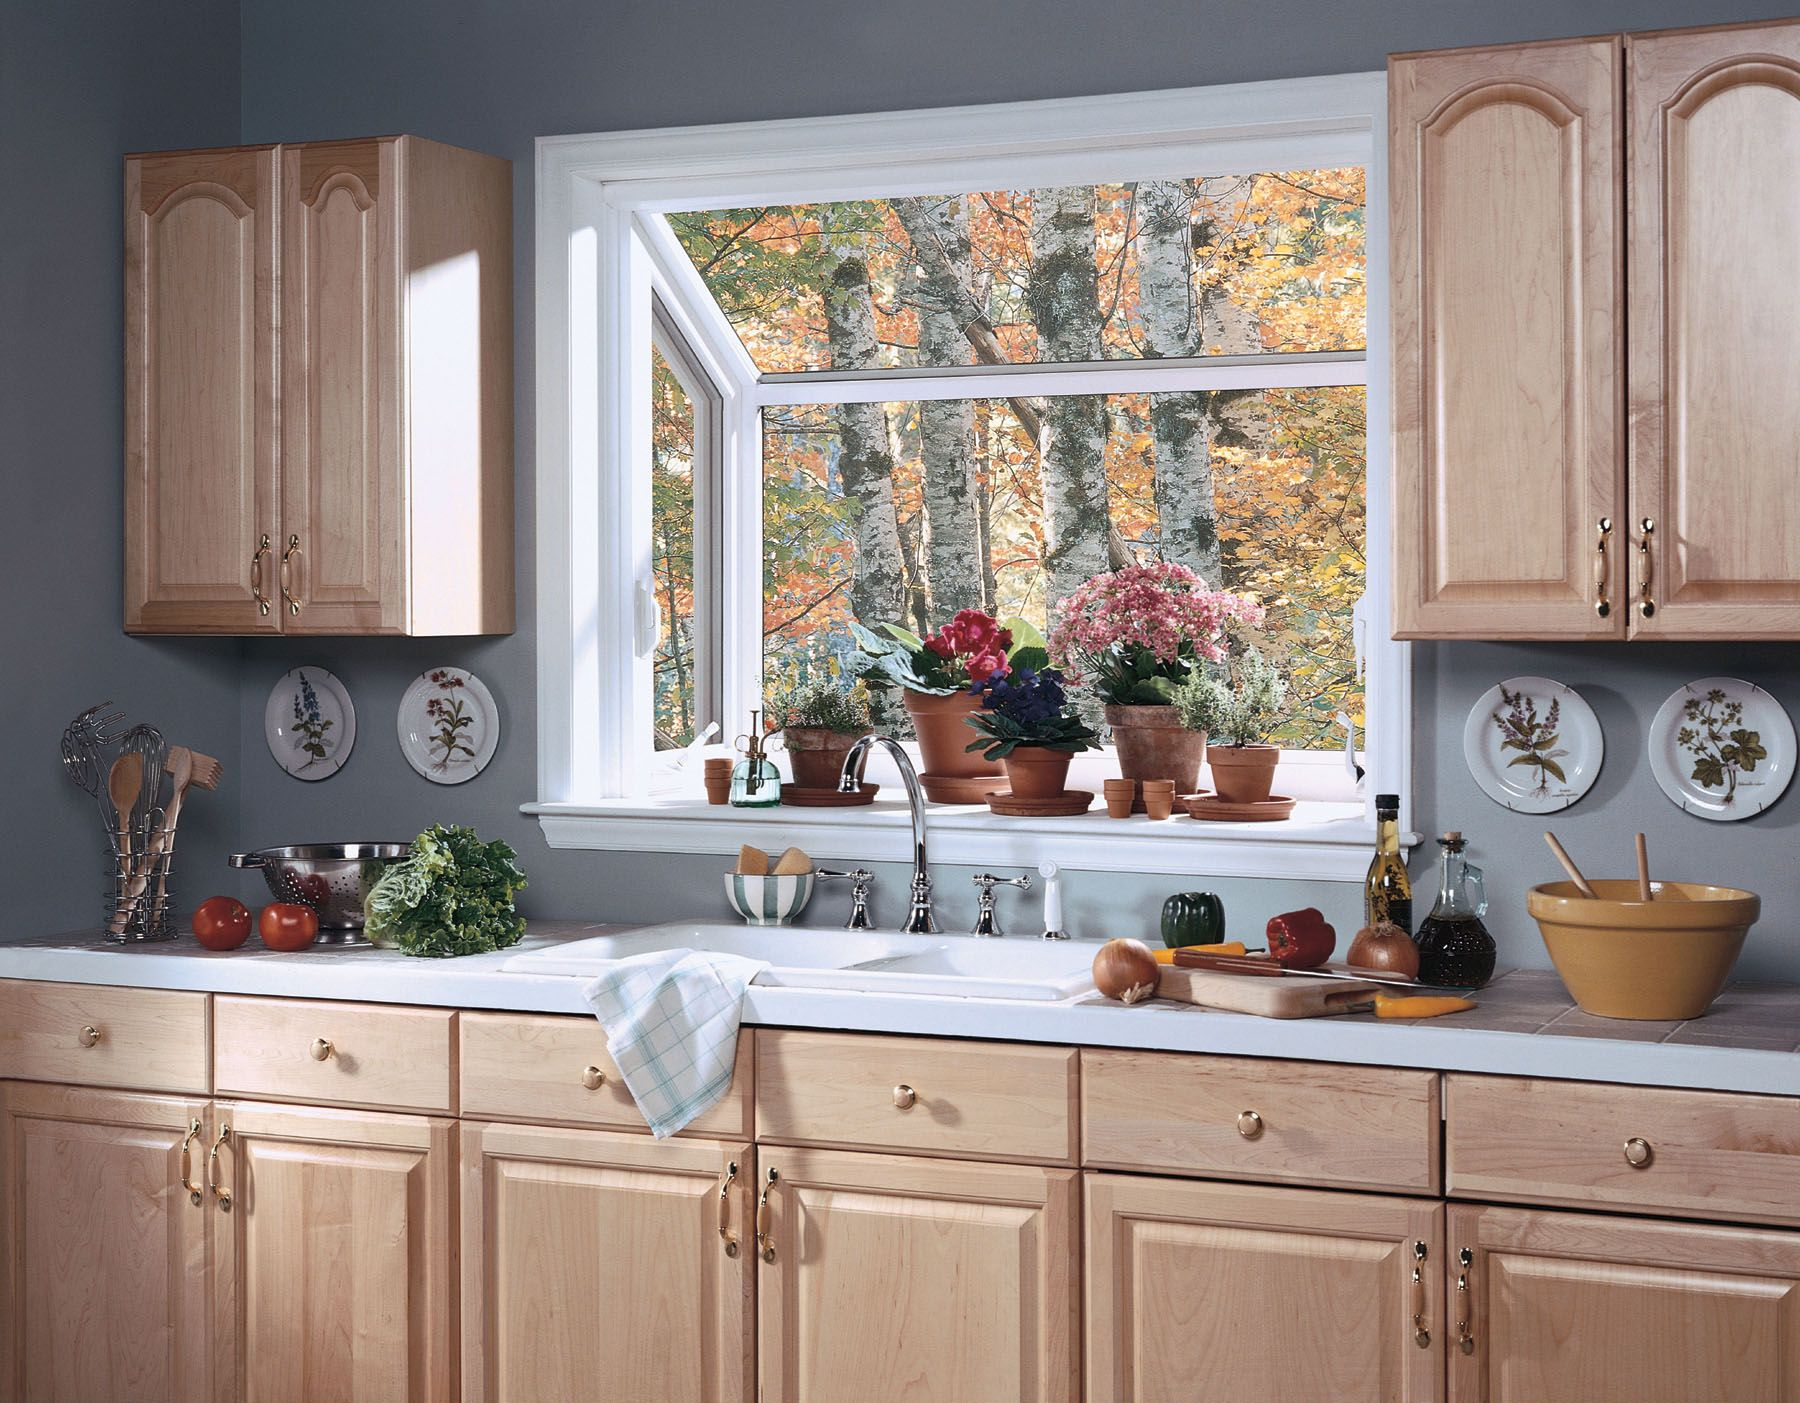 Bon Kitchen Casement Window Over Sink | Kitchen Garden Window, Greenhouse Sink  Window, Window Boxes